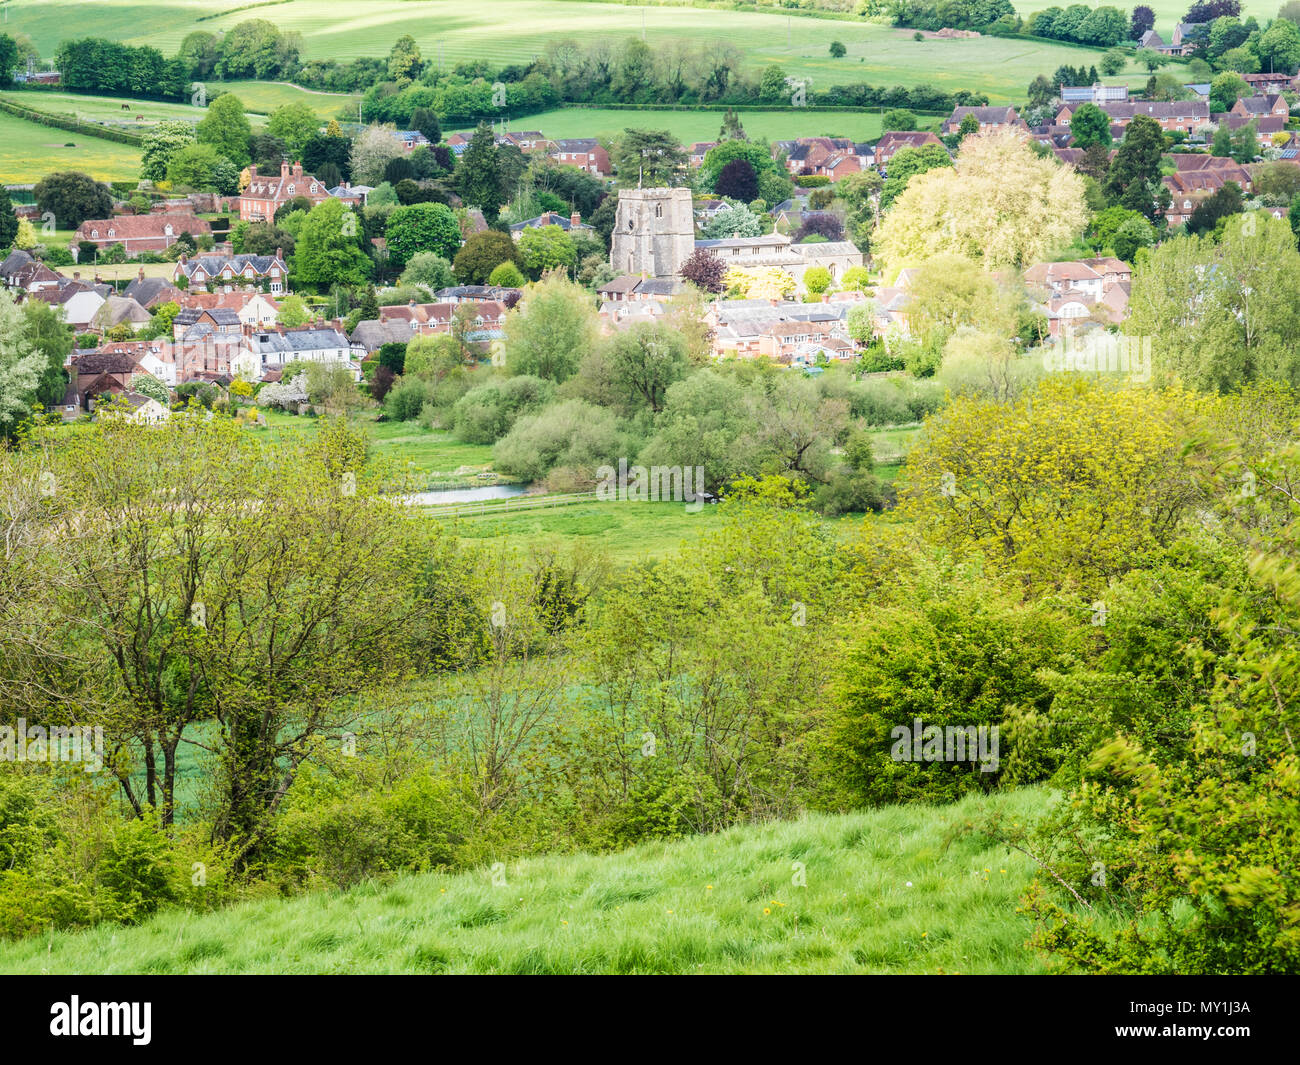 View over the Wiltshire village of Ramsbury. - Stock Image